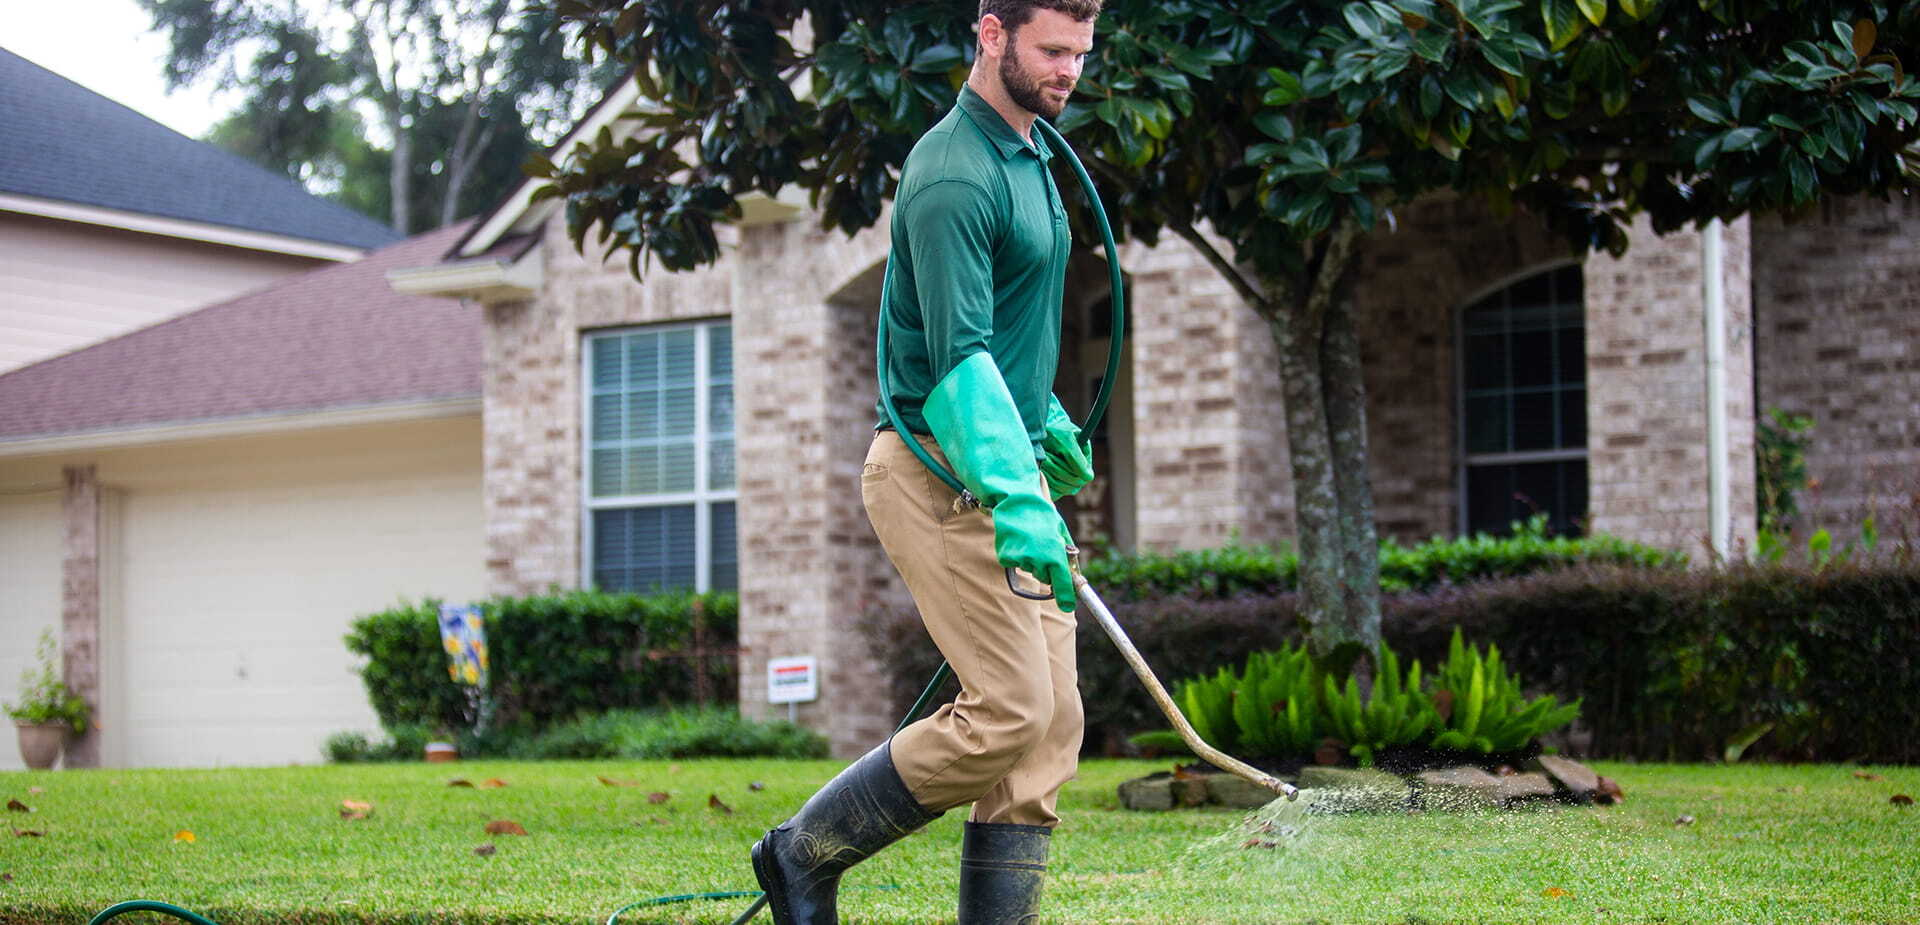 Weed Man Lawn Care Services